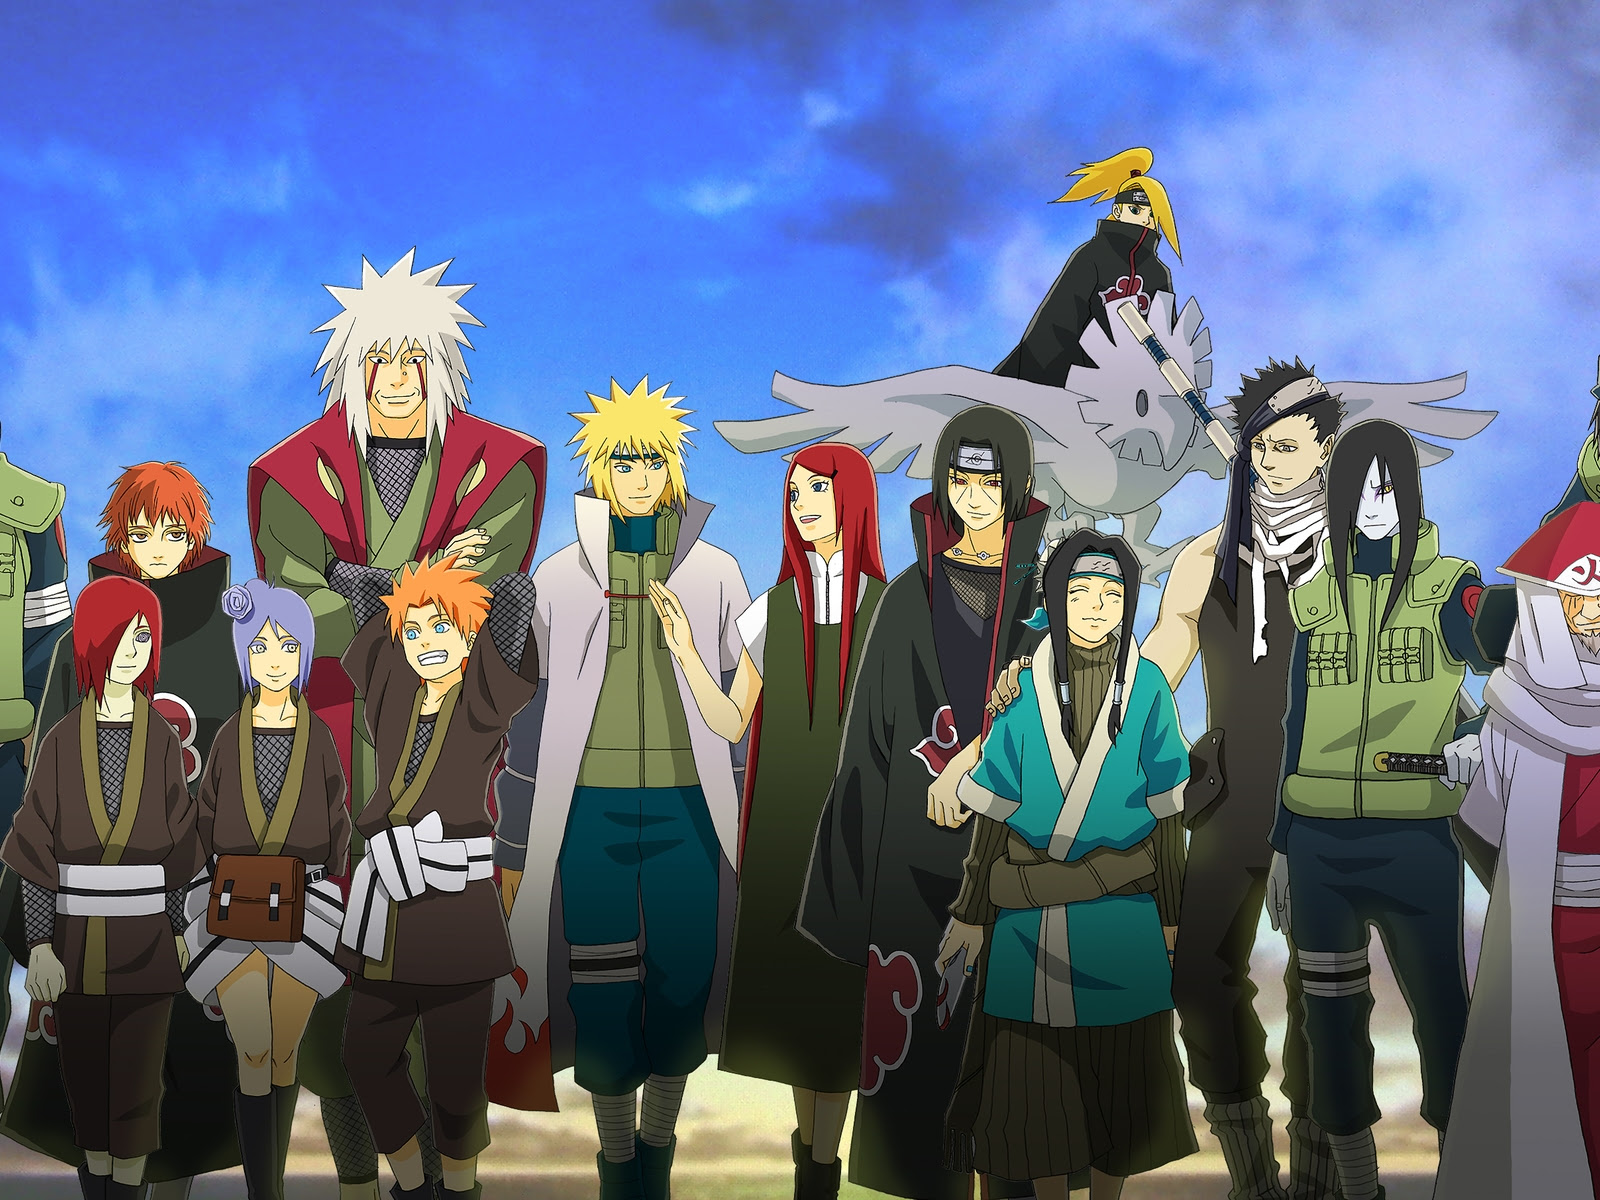 Naruto Shippuuden wallpapers and images - wallpapers ...